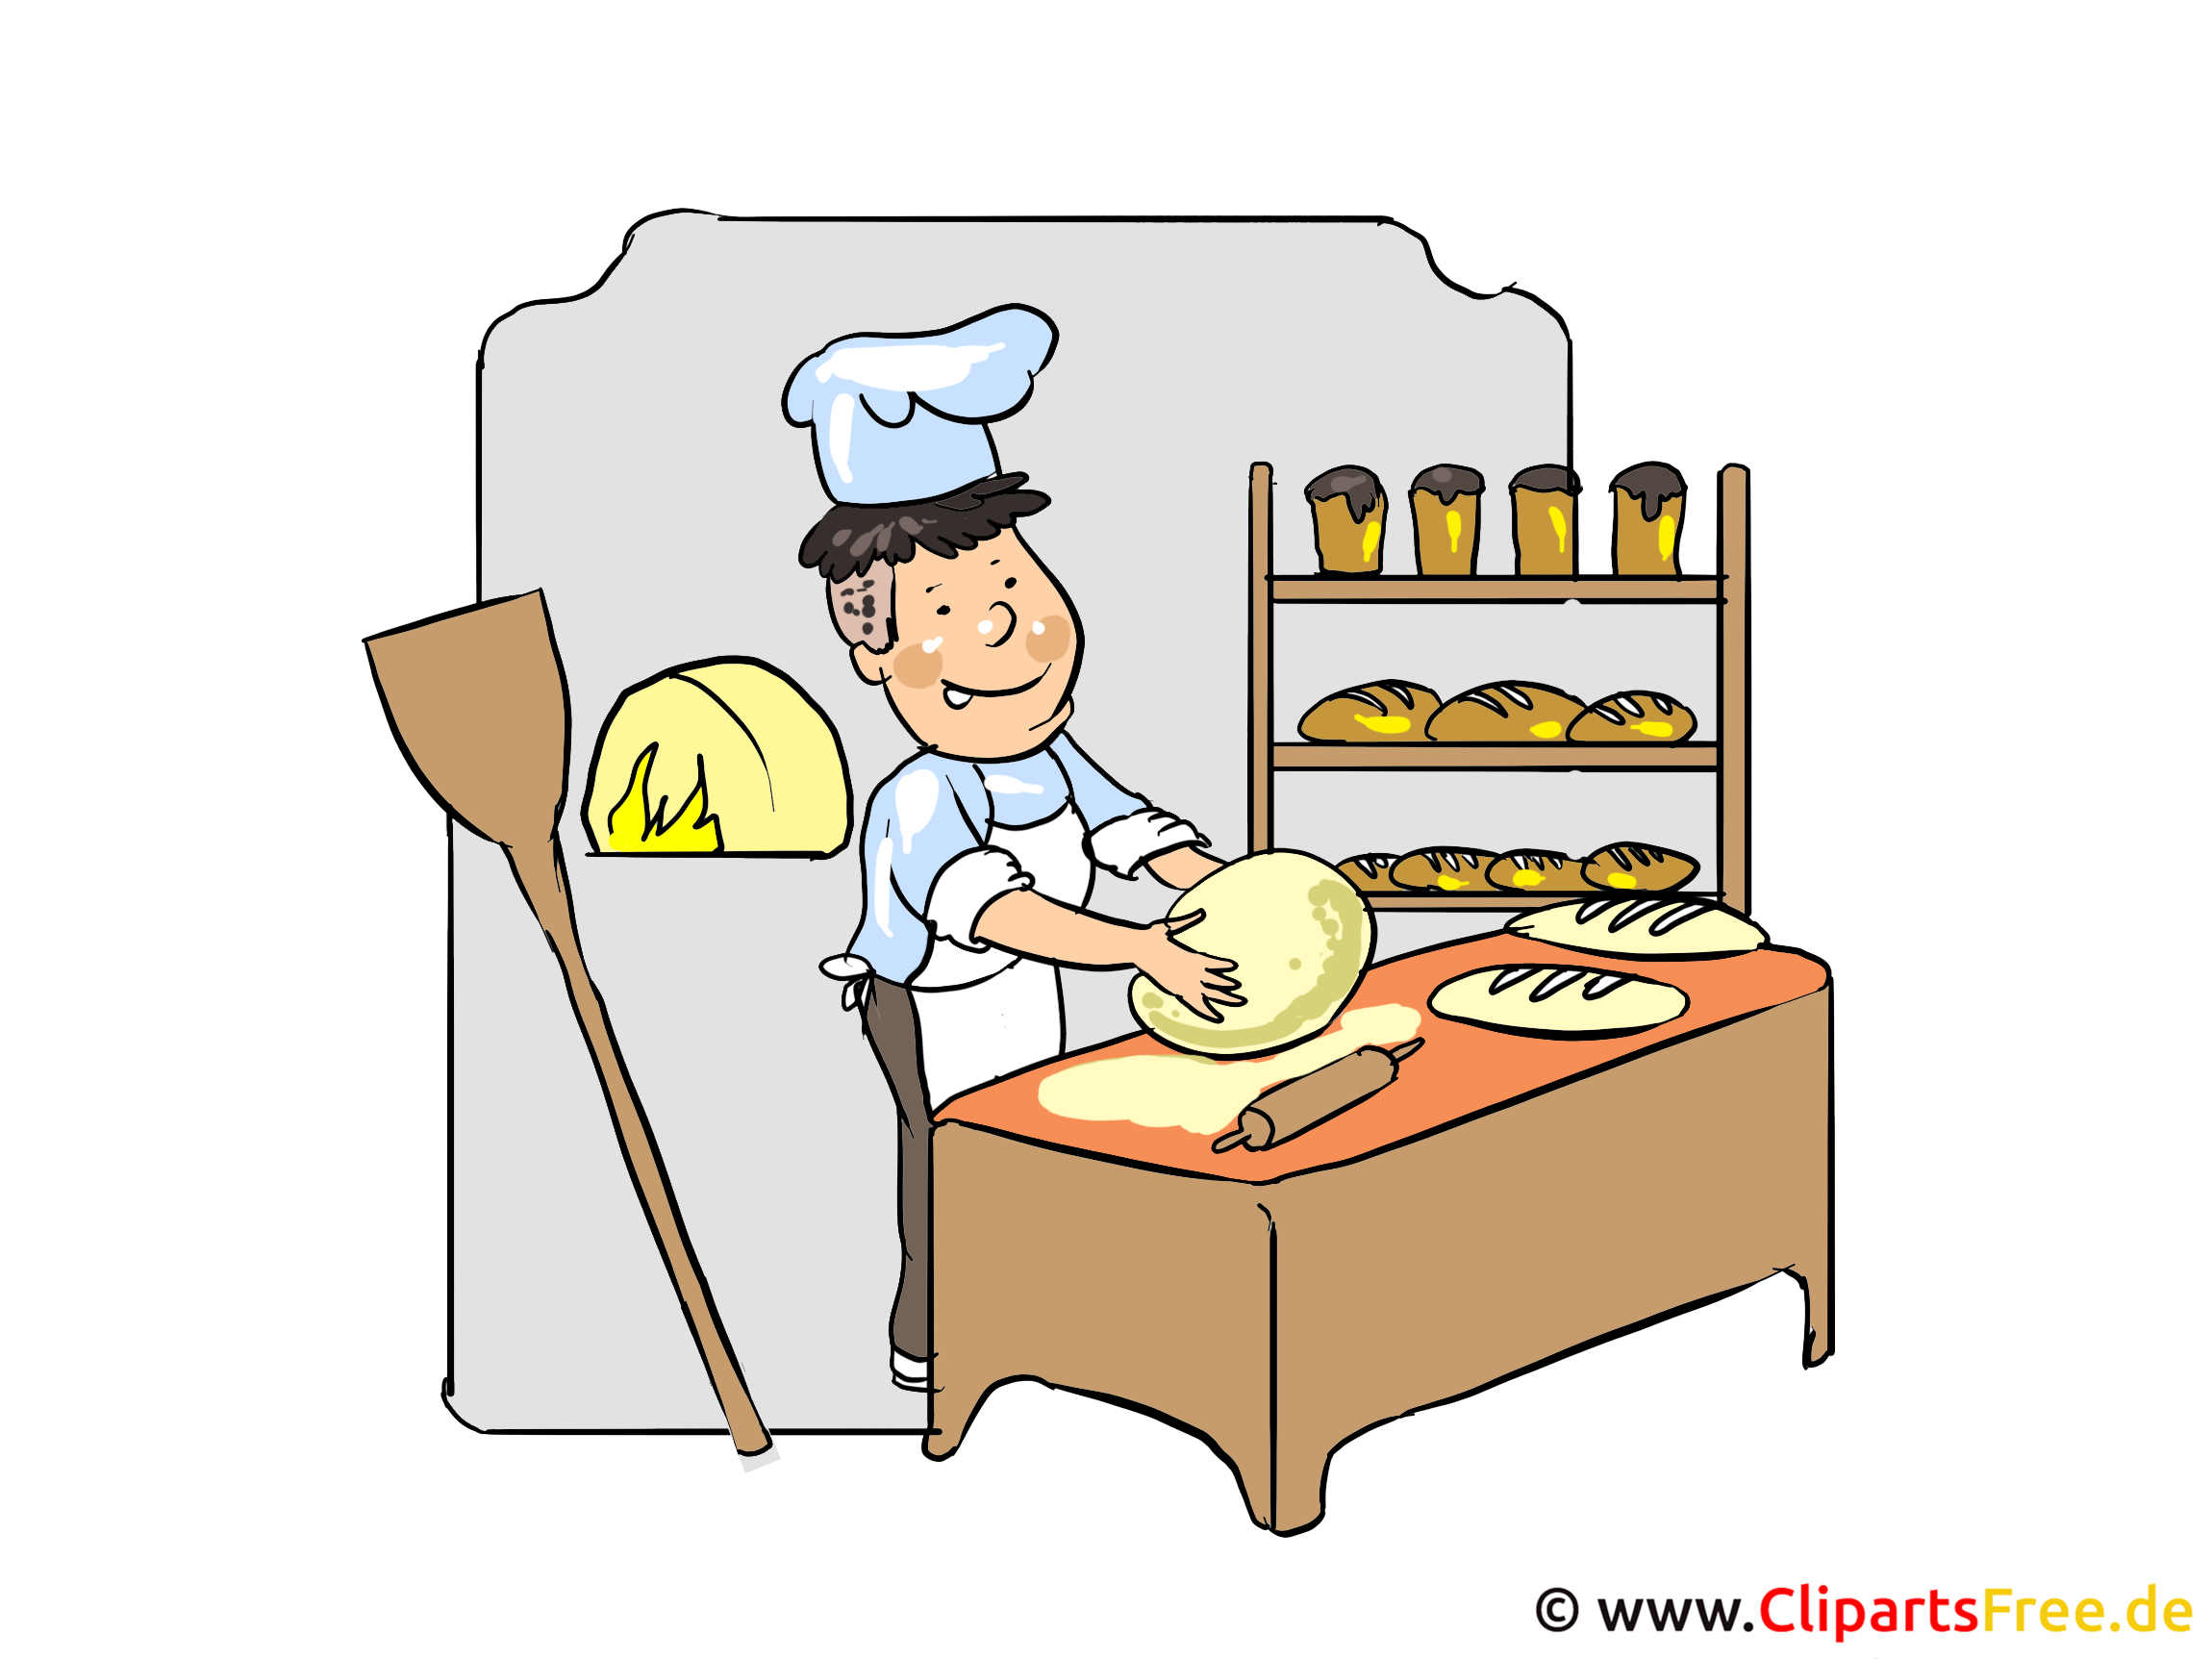 Bäcker Clipart, Bild, Cartoon, Illustration kostenlos